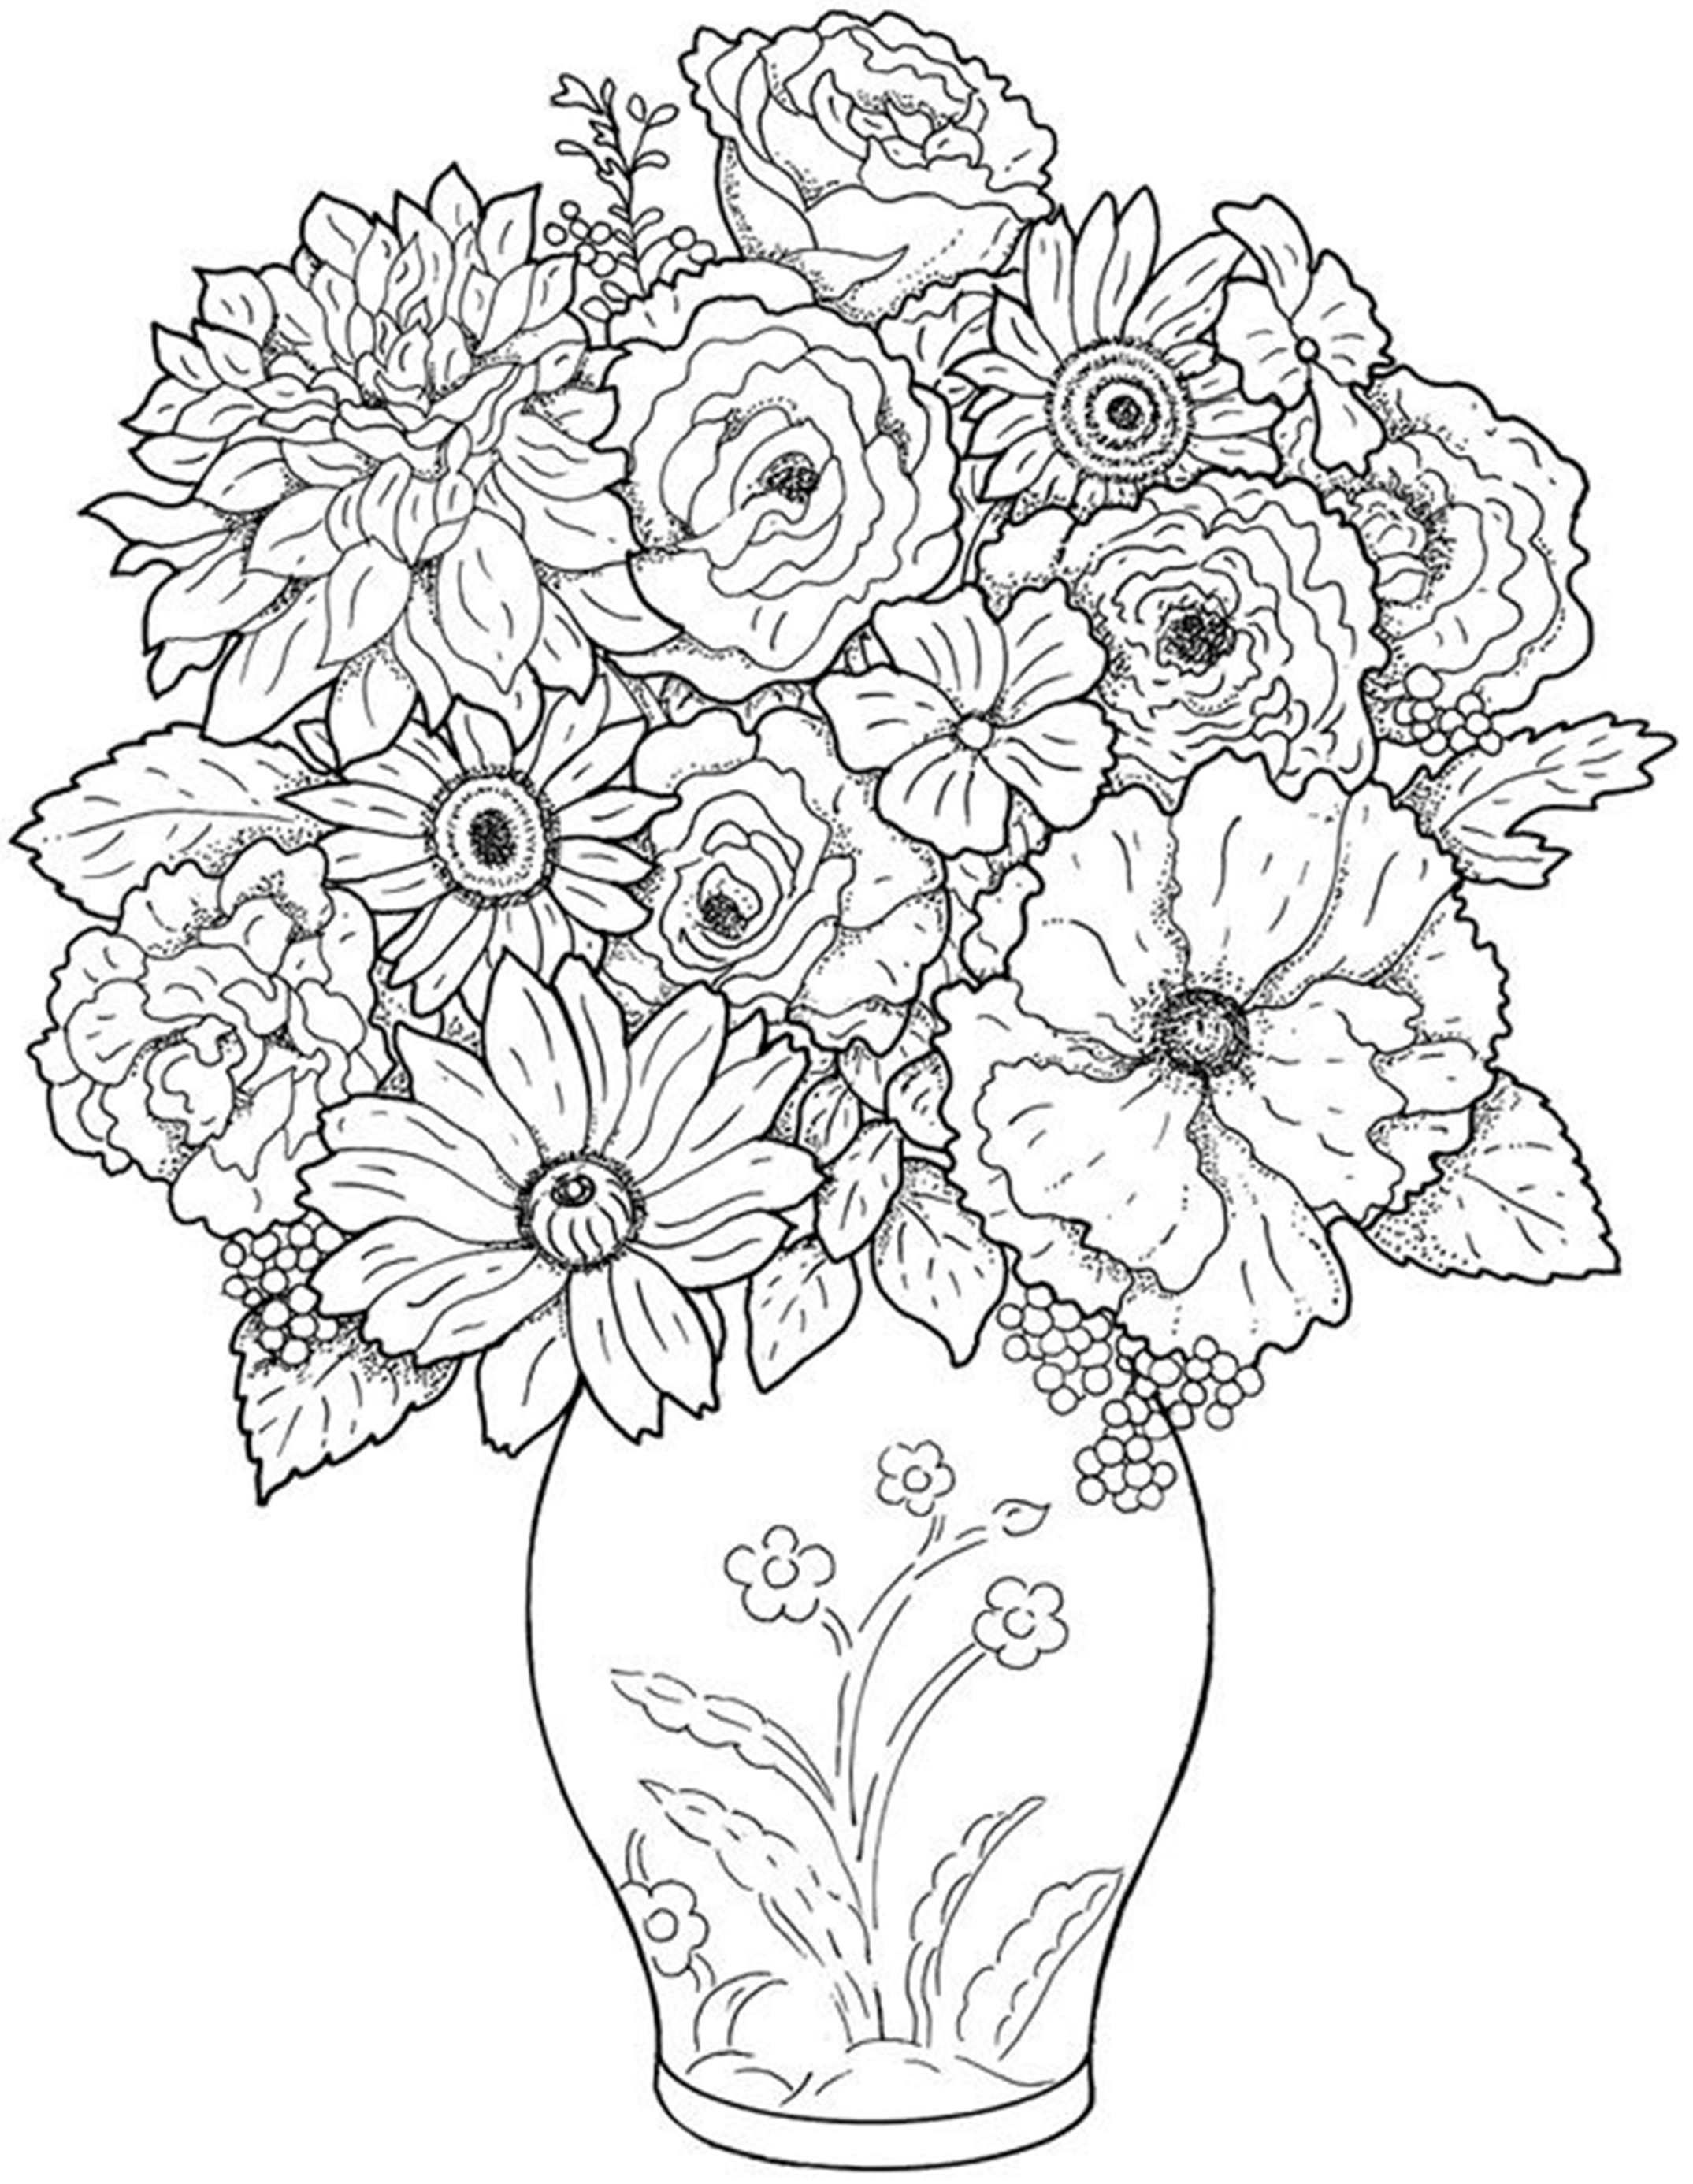 flower detailed coloring pages - photo#31